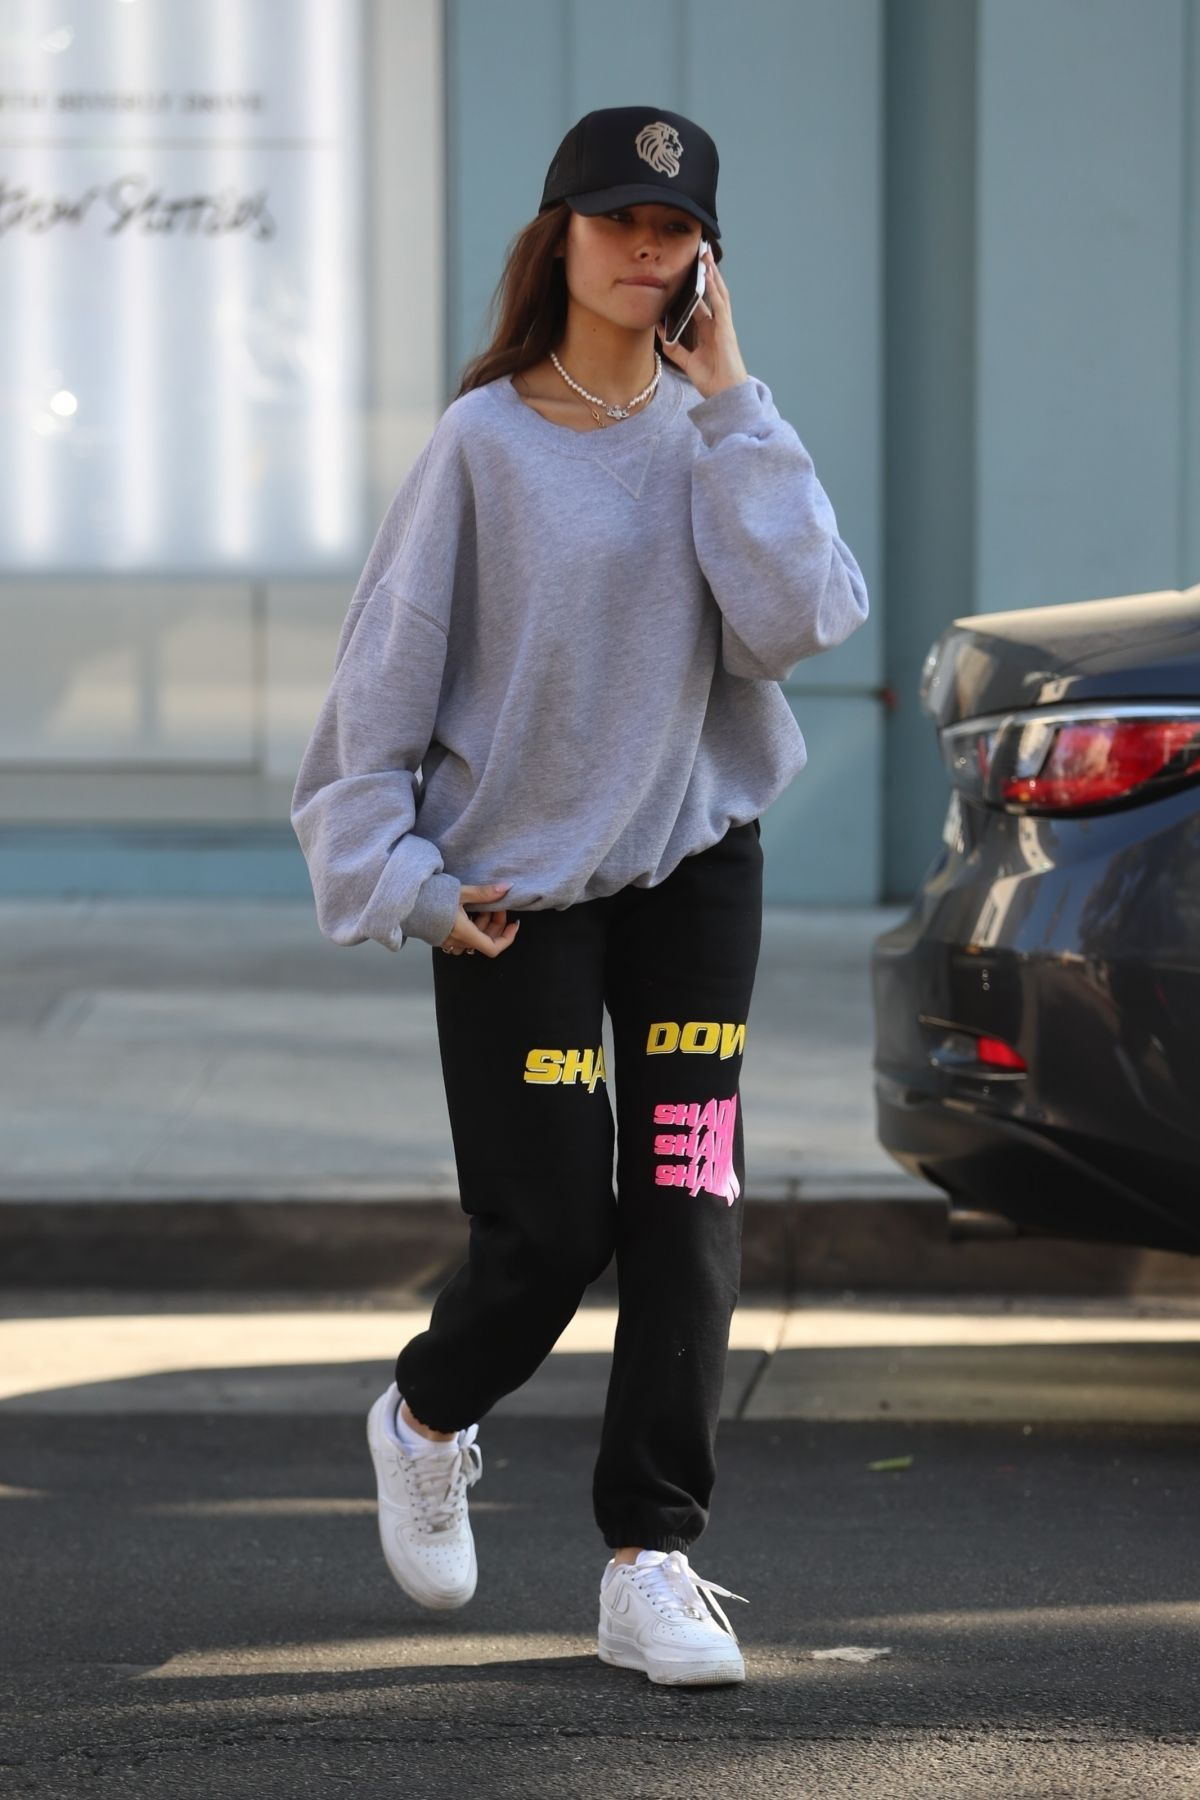 Madison Beer At Croft Alley In Beverly Hills 11 04 2019 Beer Outfit Fashion Madison Beer Outfits [ 1800 x 1200 Pixel ]